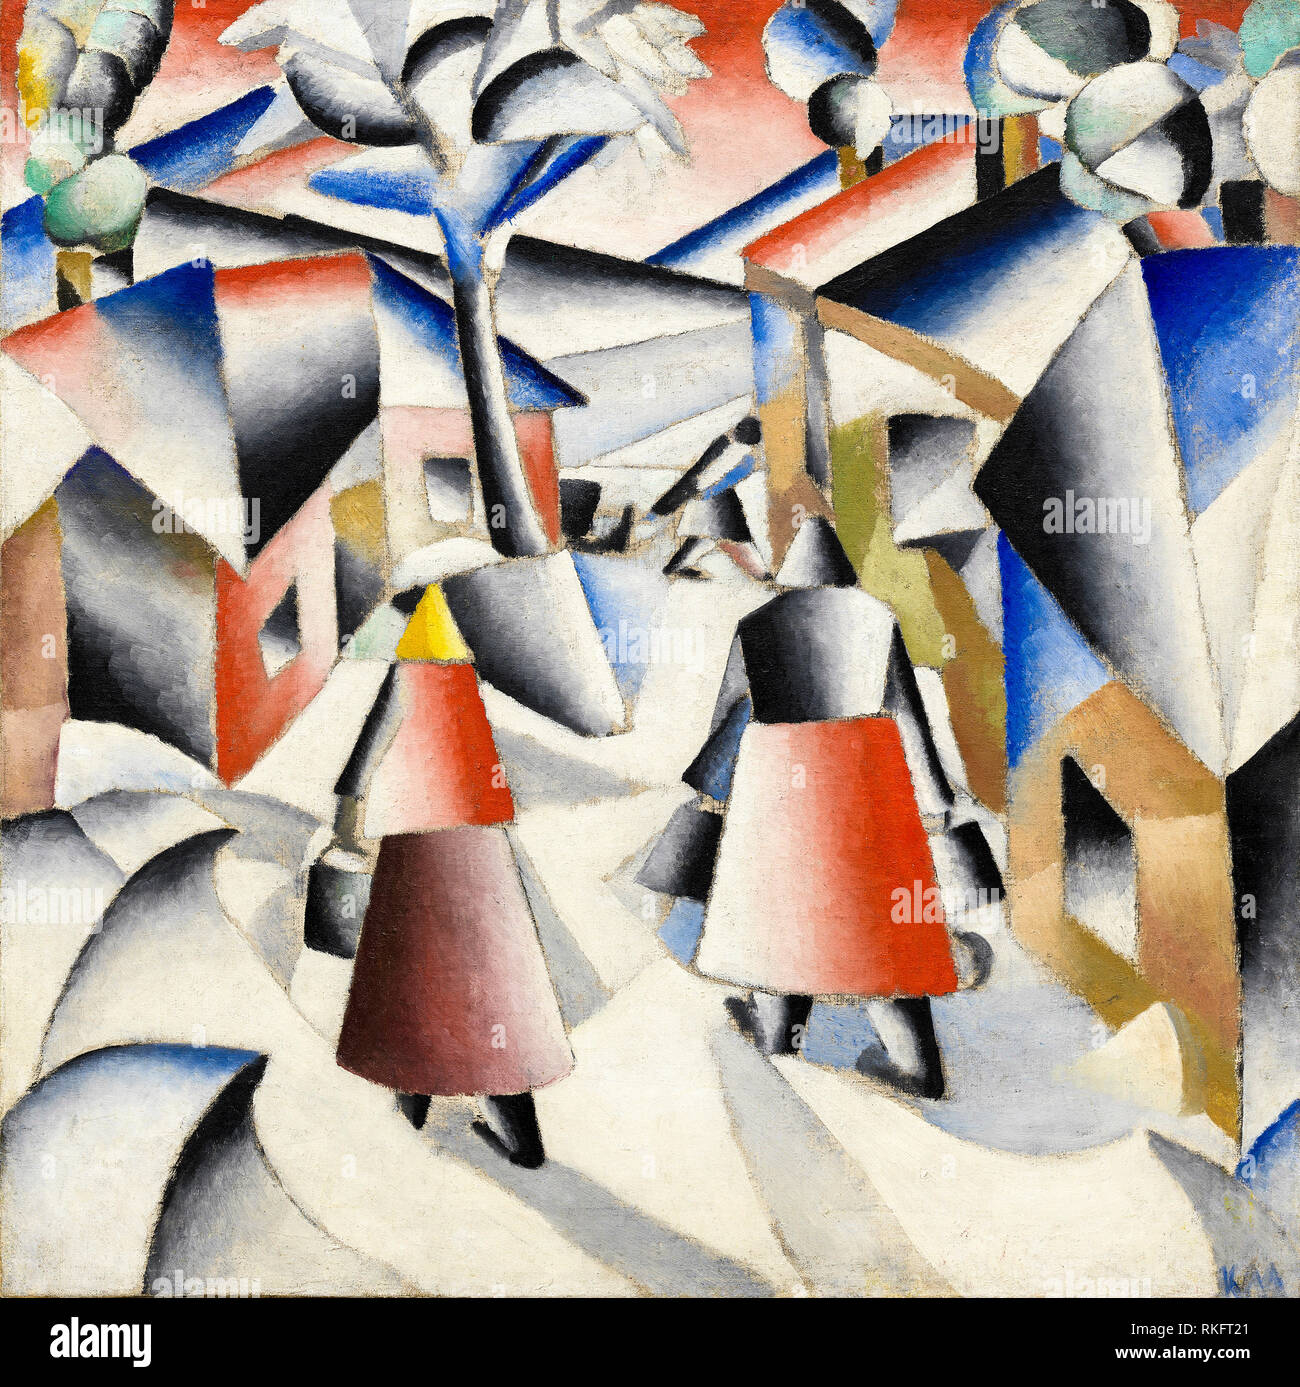 Abstract painting, Morning in the Village after Snowstorm, Kazimir Malevich, 1913 - Stock Image